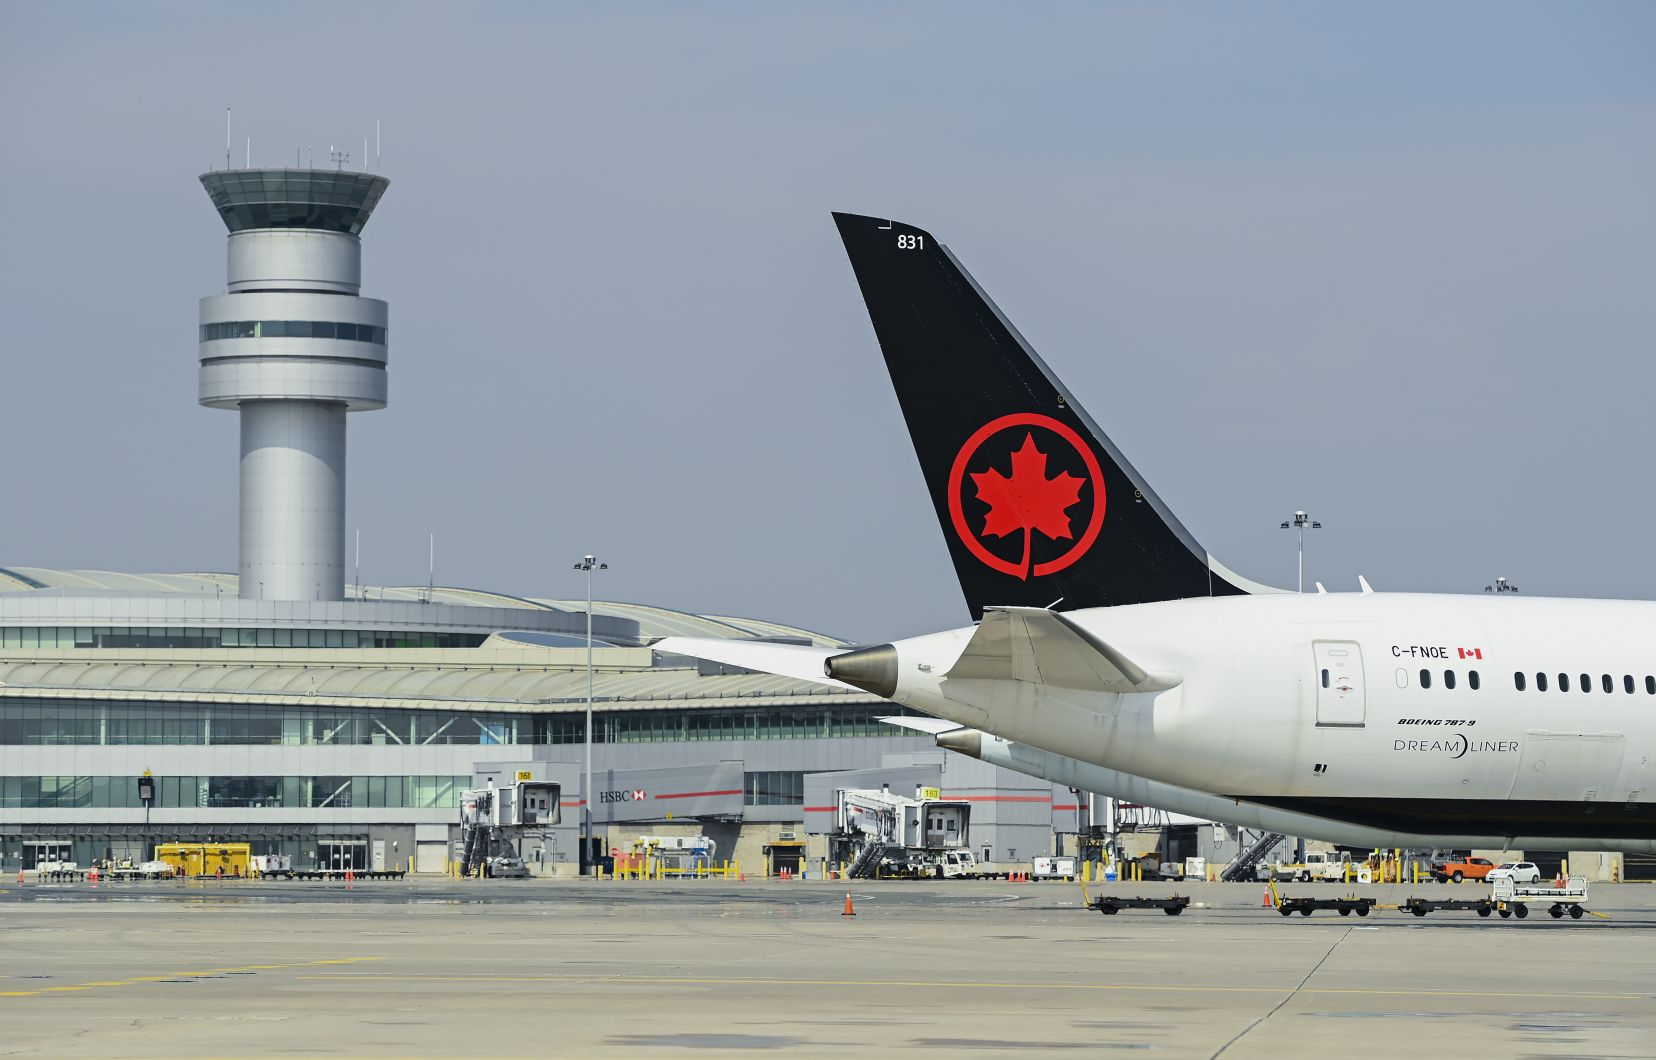 Air Canada is requesting a flight recovery plan